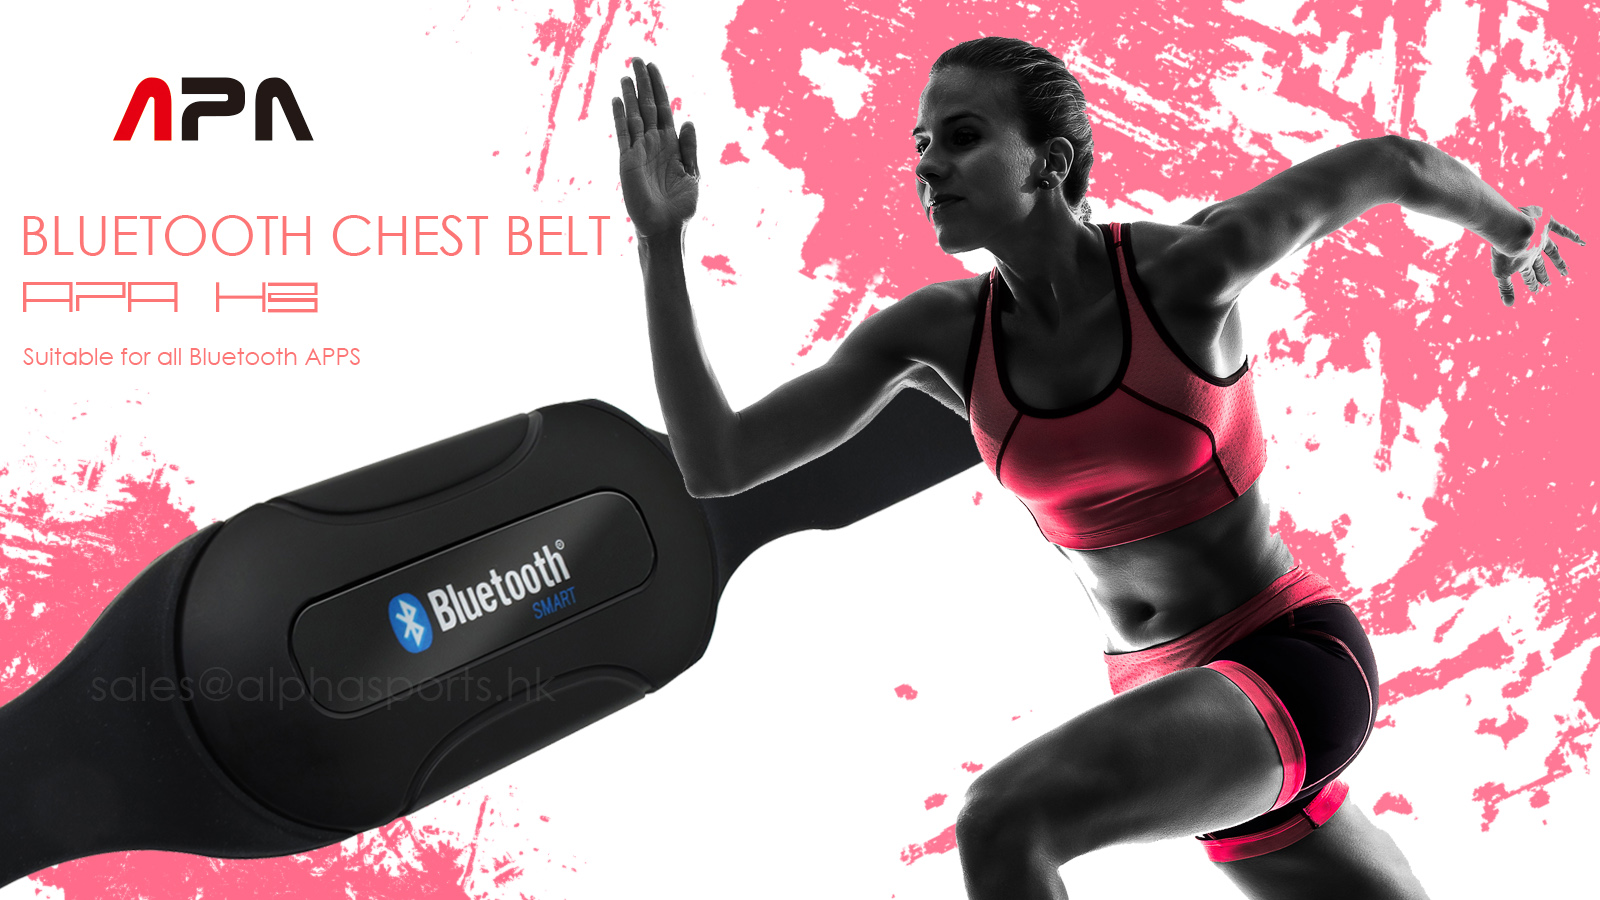 APA BLUETOOTH CHEST BELT